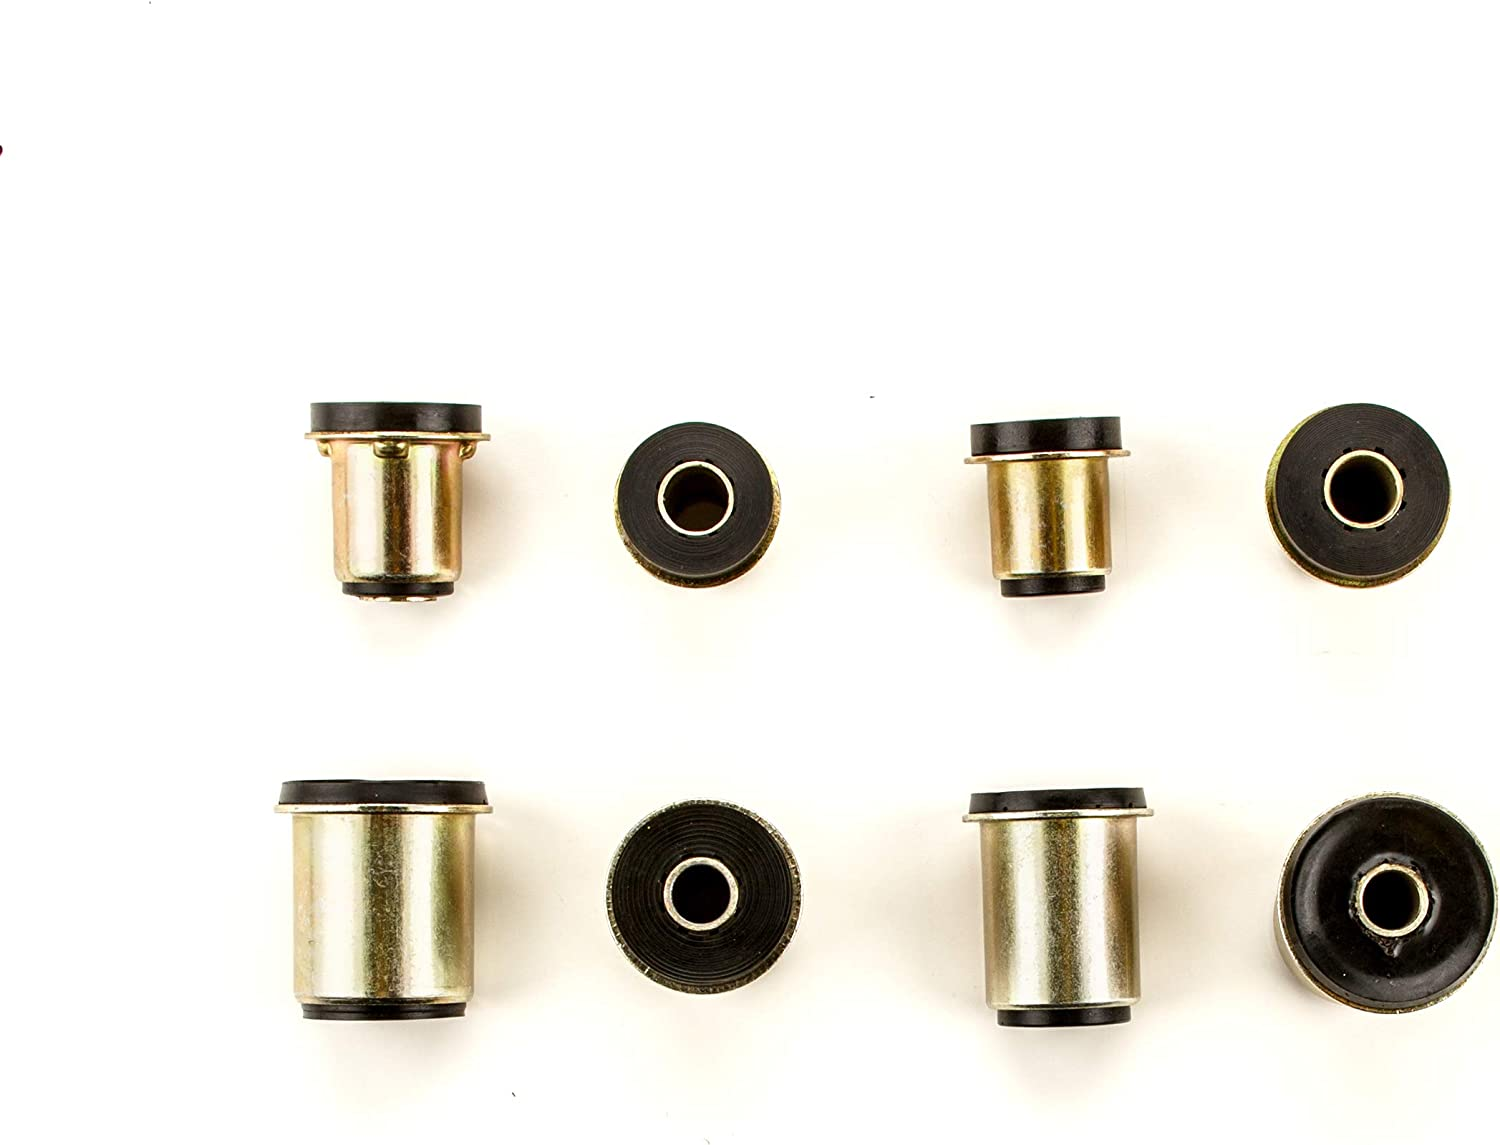 8 Piece Kit Andersen Restorations Black Polyurethane Control Arm Bushings Set Compatible with Chevrolet Camaro OEM Spec Replacements